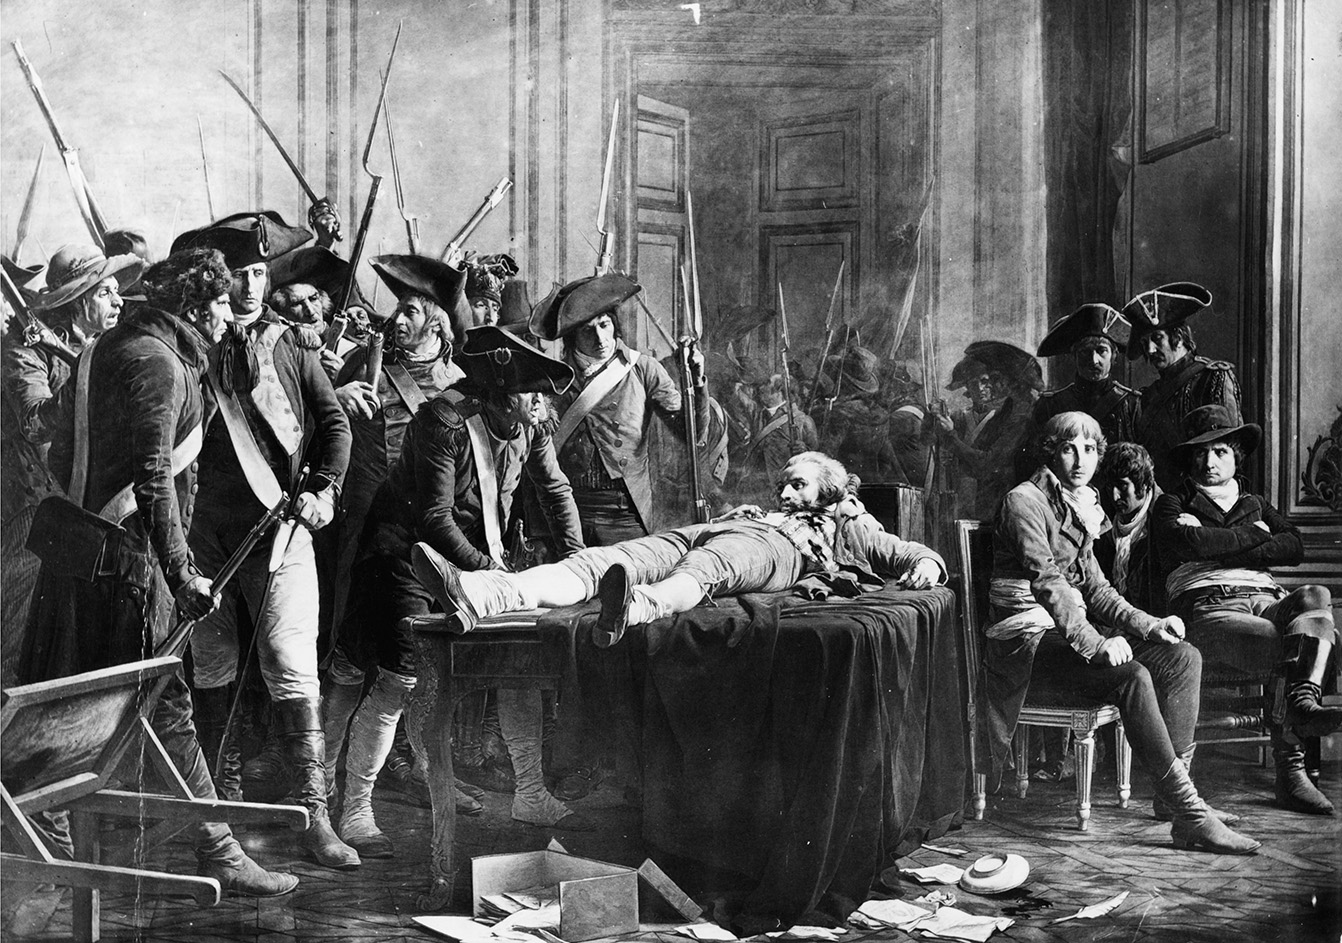 The wounded Robespierre jeered by pro-Convention soldiers, as very effectively depicted by Lucien-Étietienne Mélingue in 1877. To Robespierre's left sits Saint-Just, watched over by two gendarmes. (  Wikipedia  )